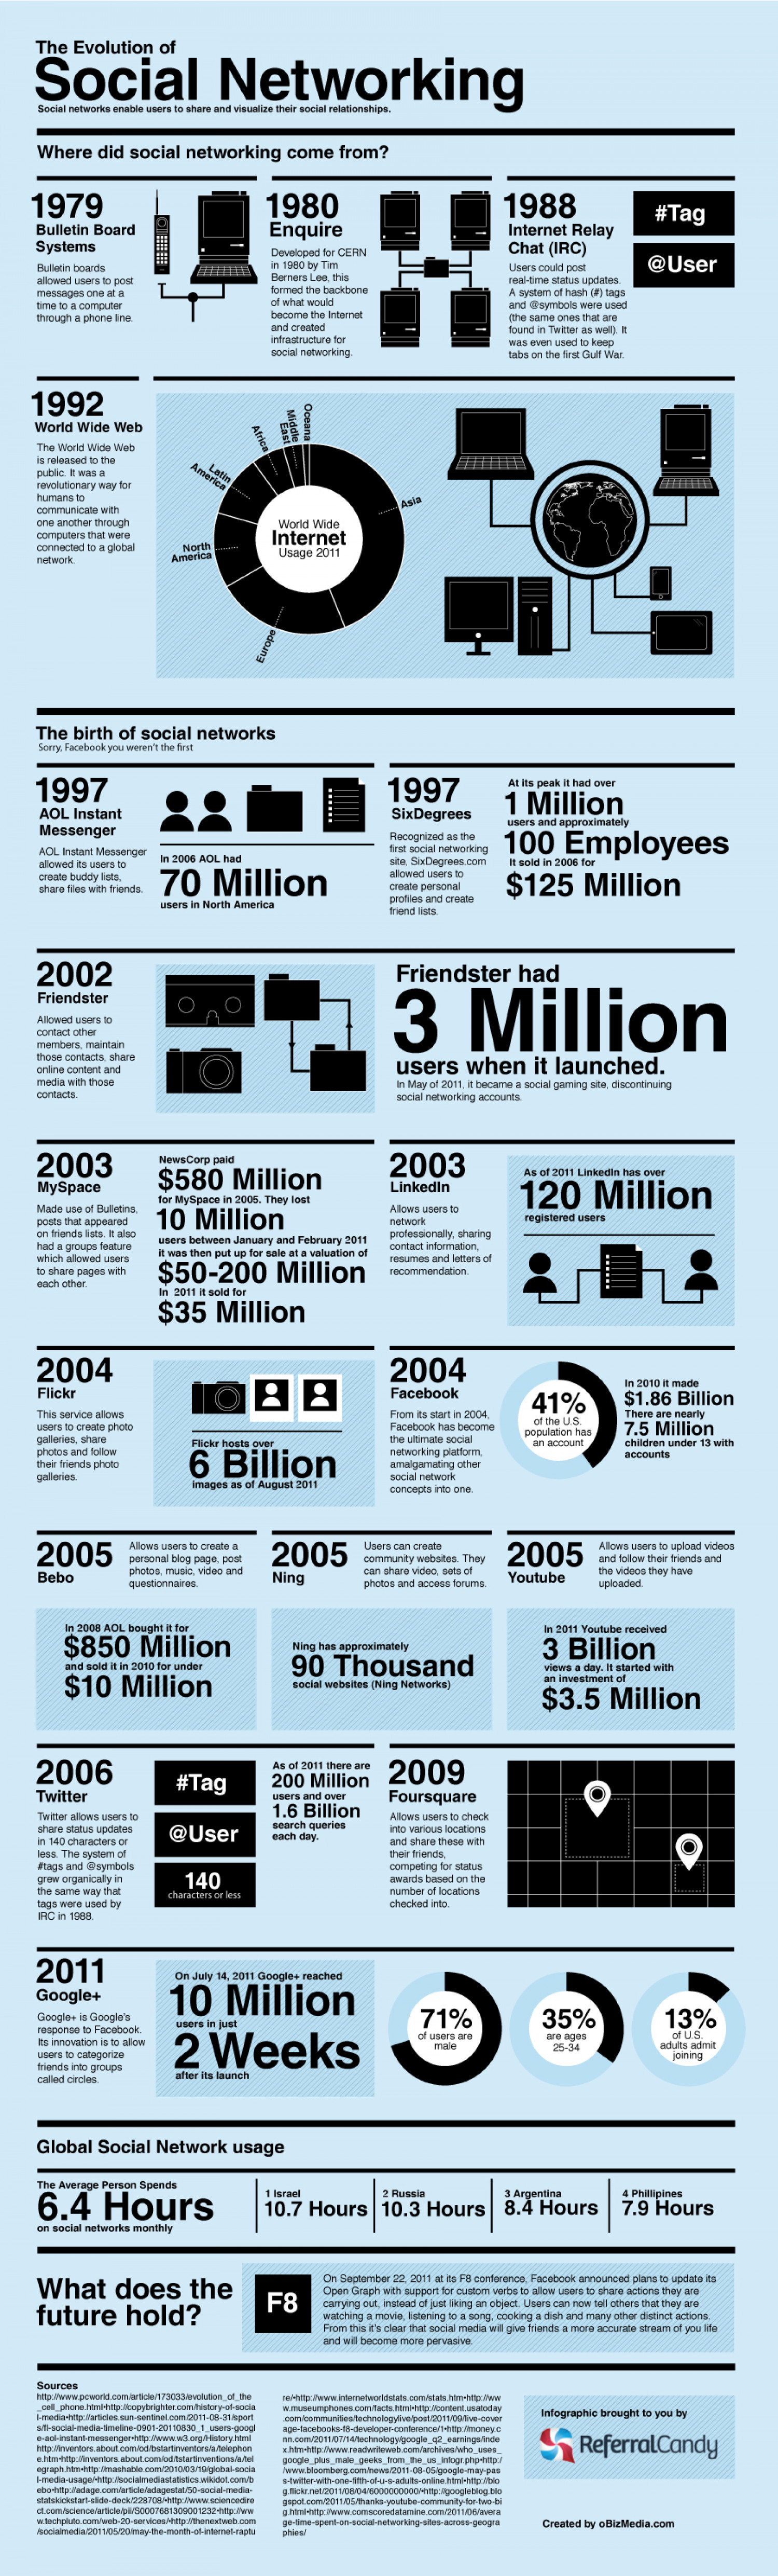 The Evolution of Social Networking Infographic